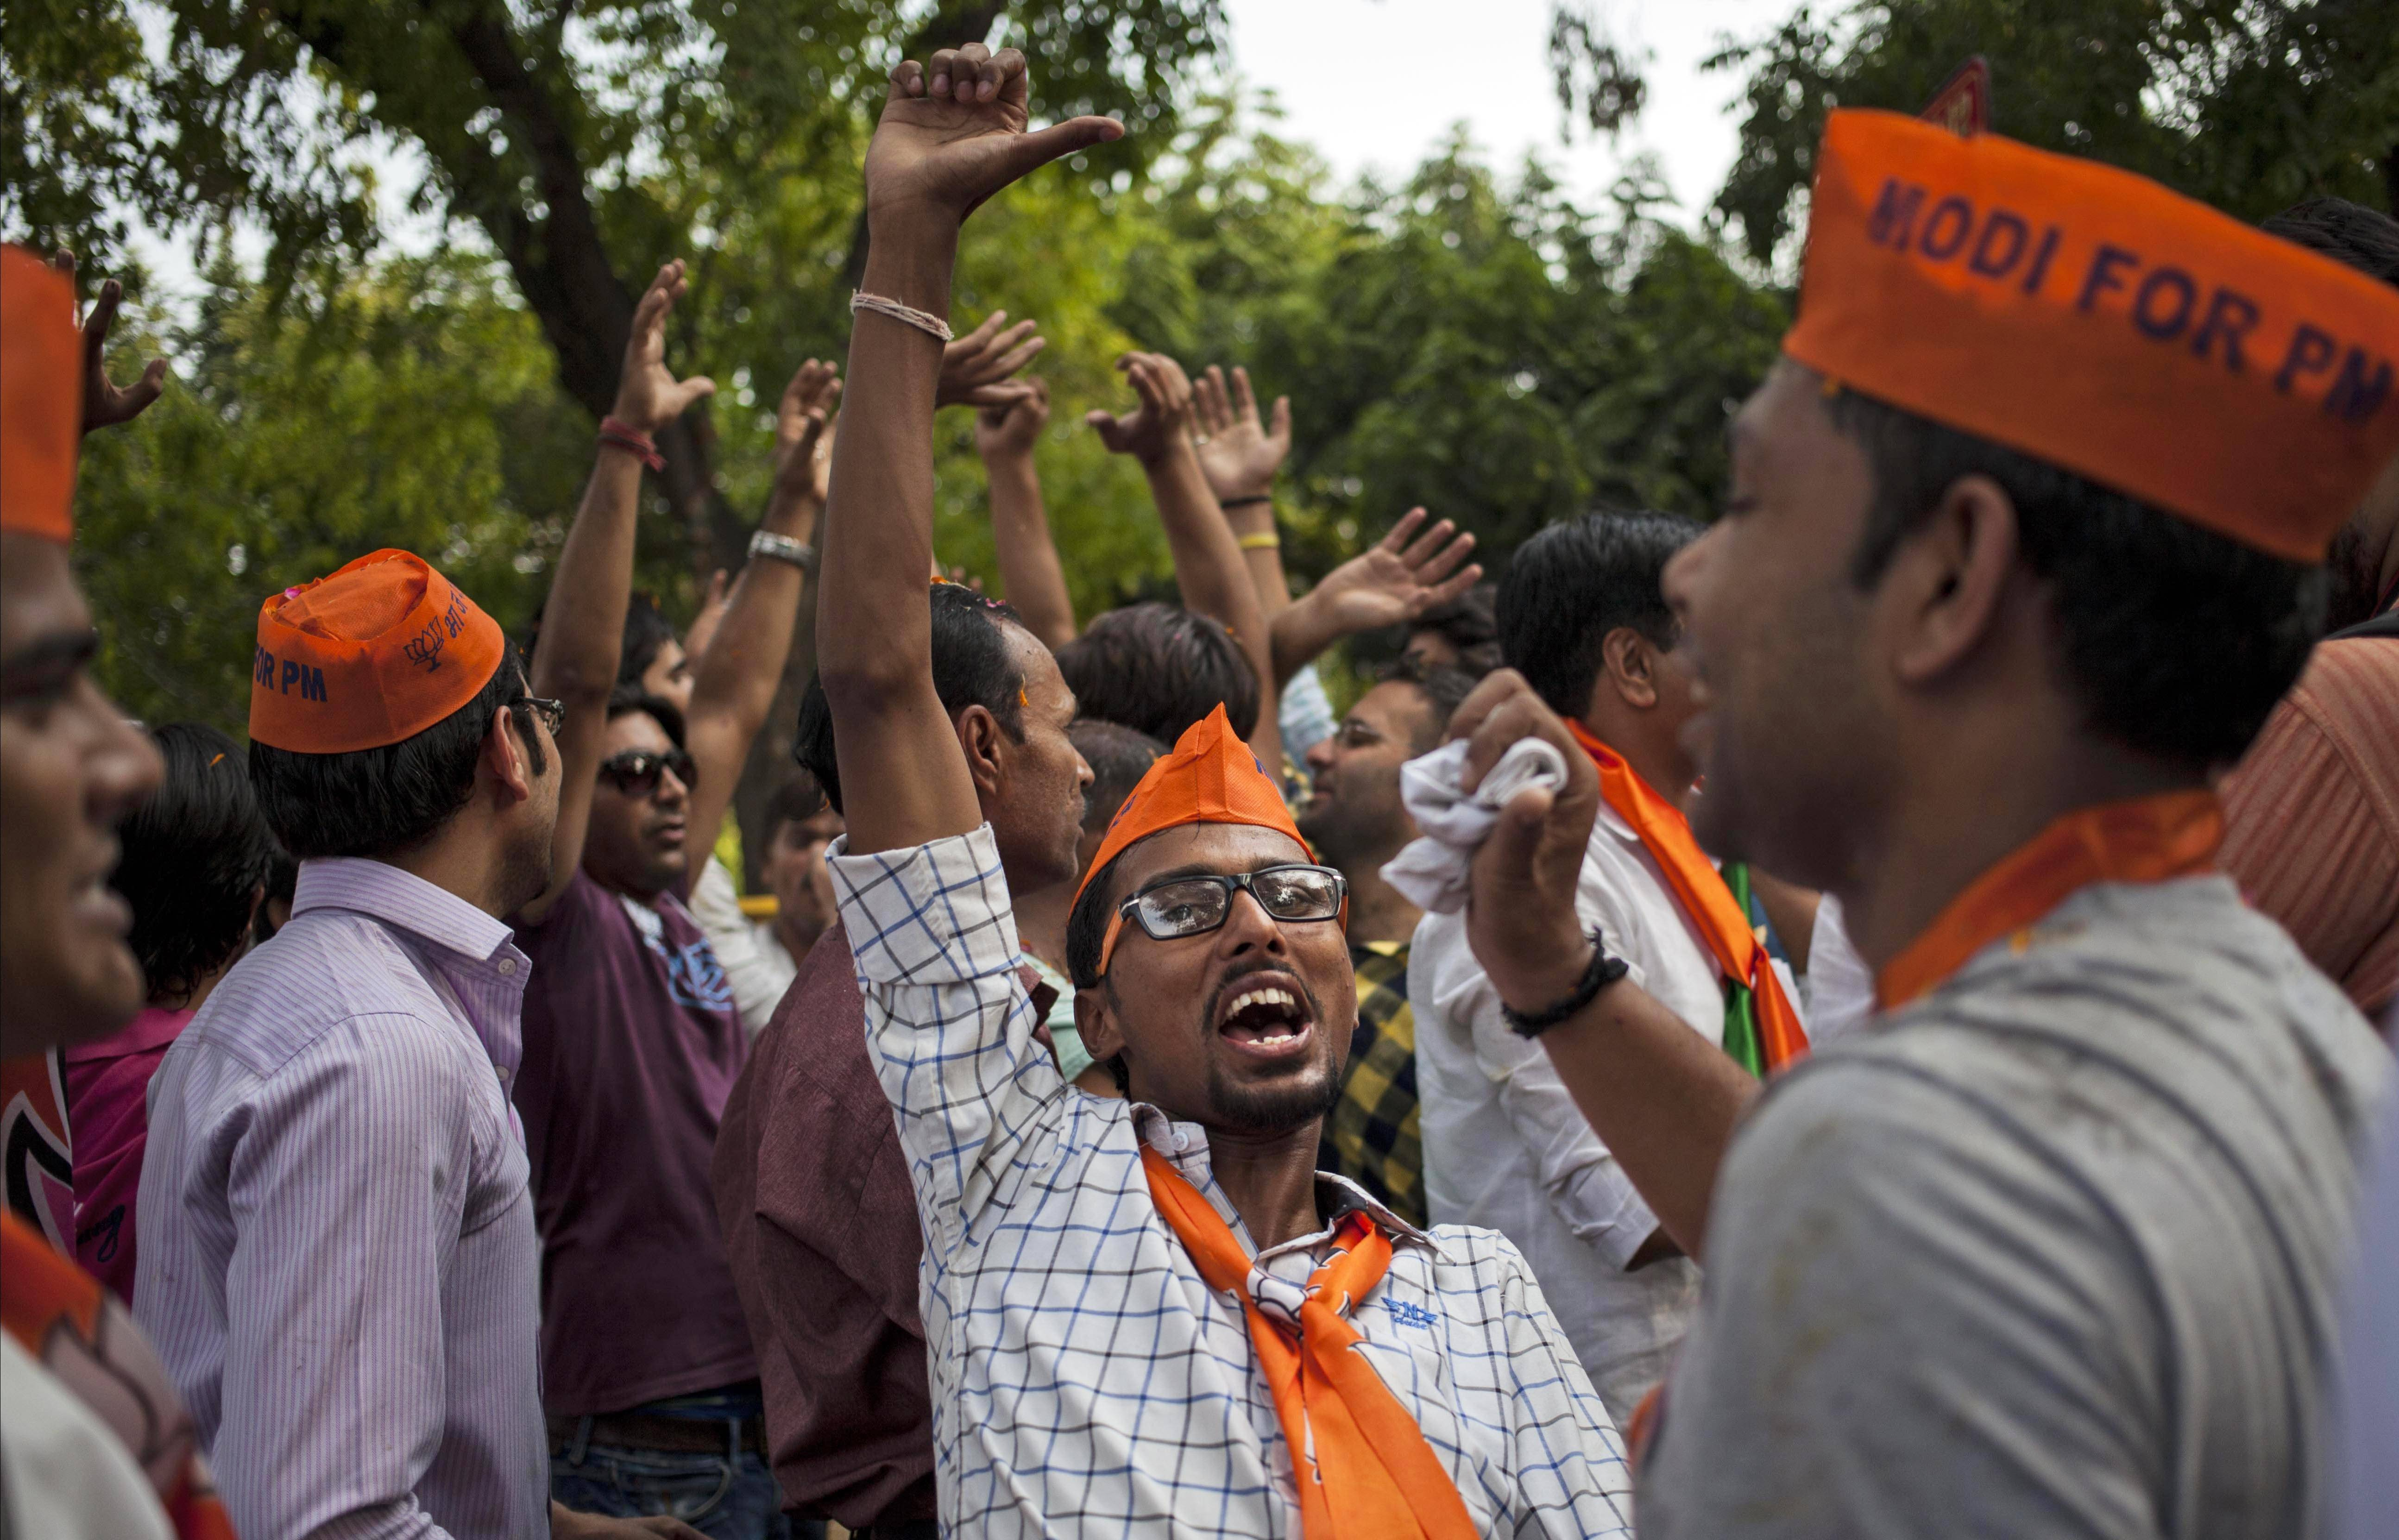 Bharatiya Janata Party (BJP) supporters dance to celebrate election results that showed the BJP winning by a landslide, outside the party headquarters in New Delhi, India, Friday, May 16, 2014.